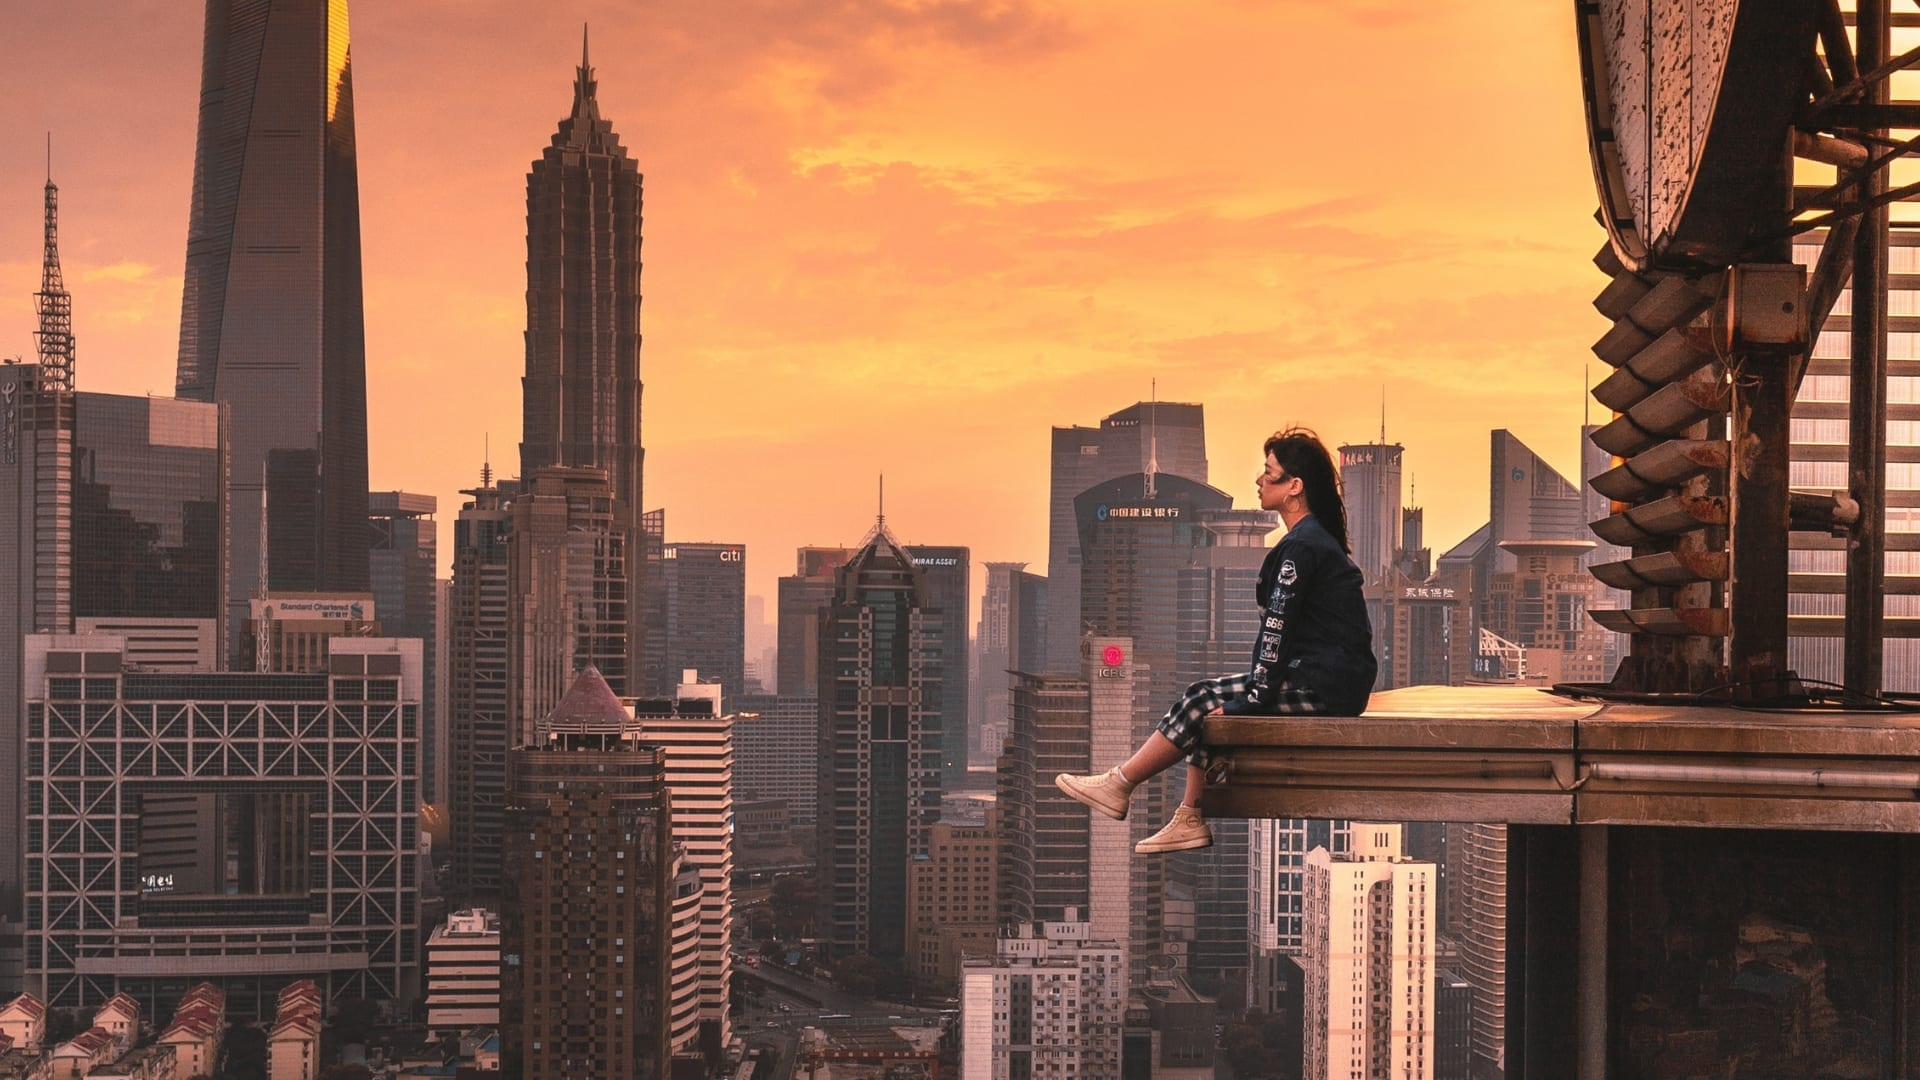 A woman is sitting on a protrusion of a building between other high buildings during sunset in Shanghai.